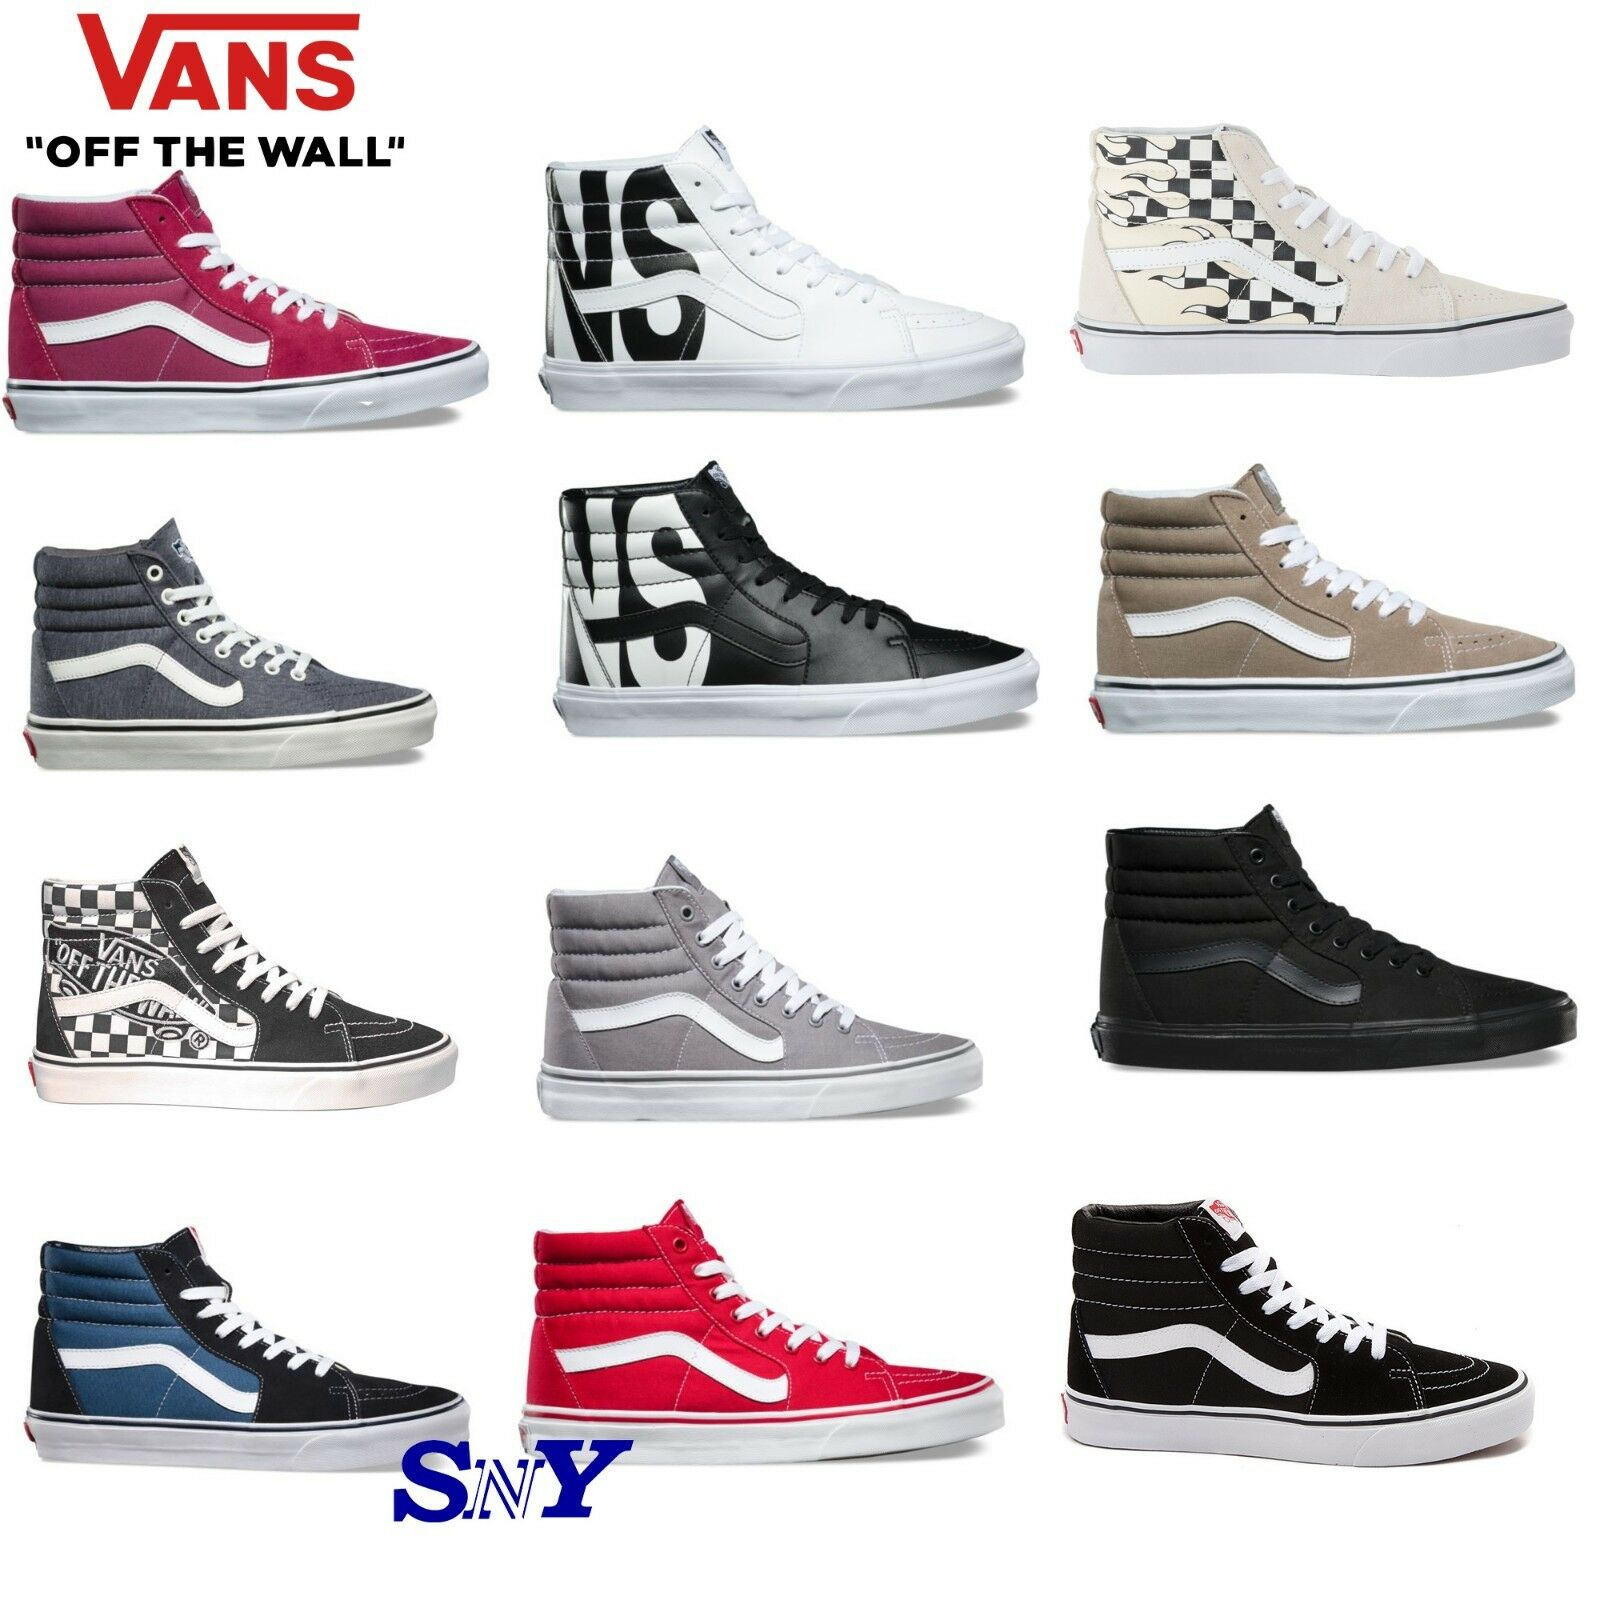 VANS SK8-HI hi top sneakers athletic skate walking shoes uni